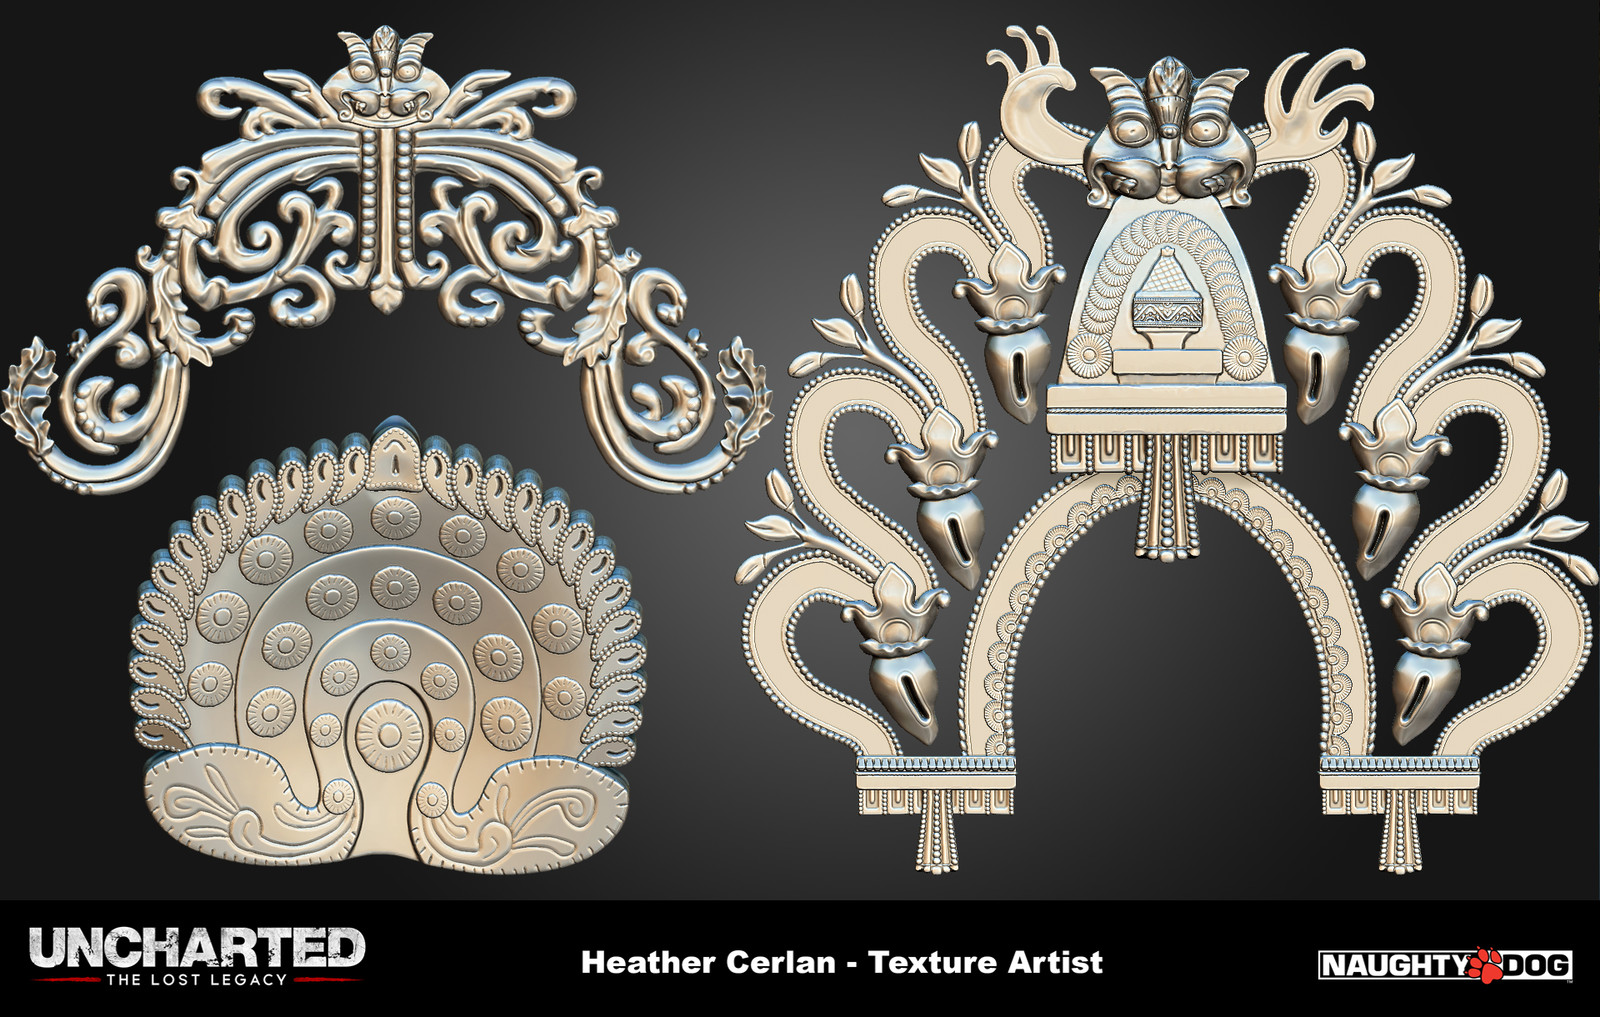 Various decorative ornaments that were used throughout the level.